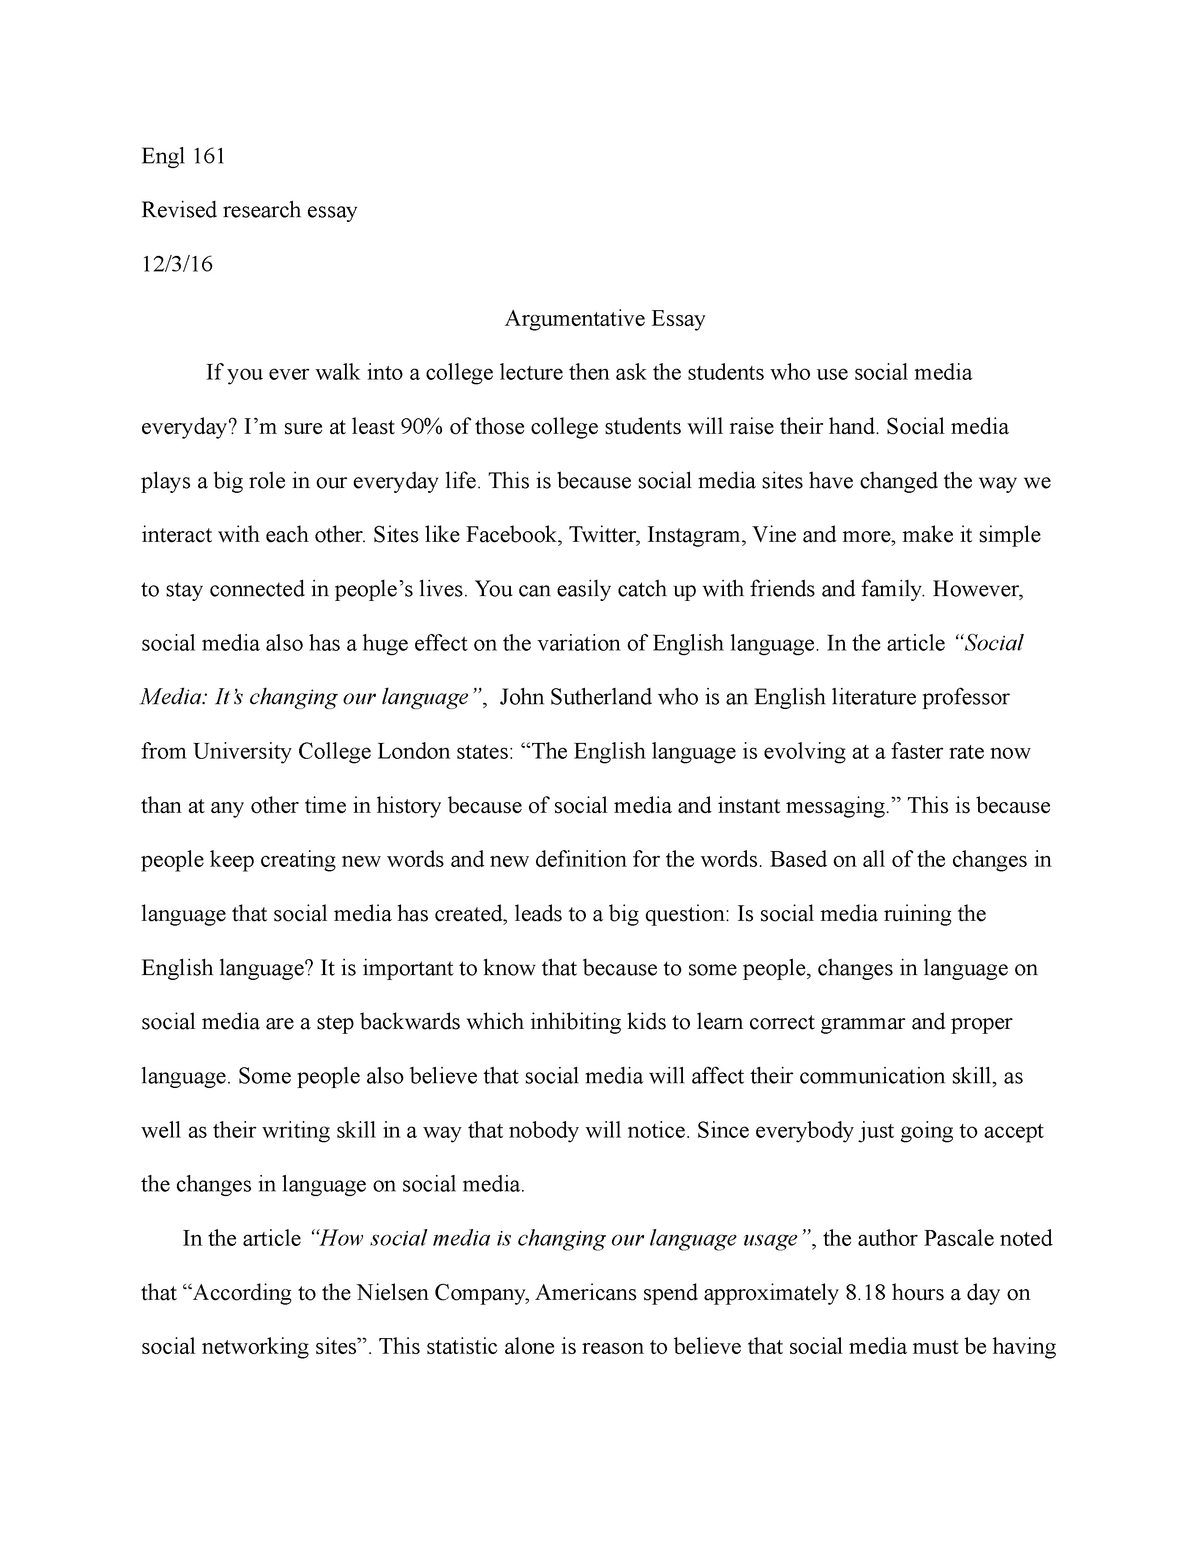 What Is A Thesis In An Essay  Proposal Essay Topics Ideas also Essays On The Yellow Wallpaper Essay Social Media Is Not Good For Teenagers Argumentative  The Yellow Wallpaper Essay Topics